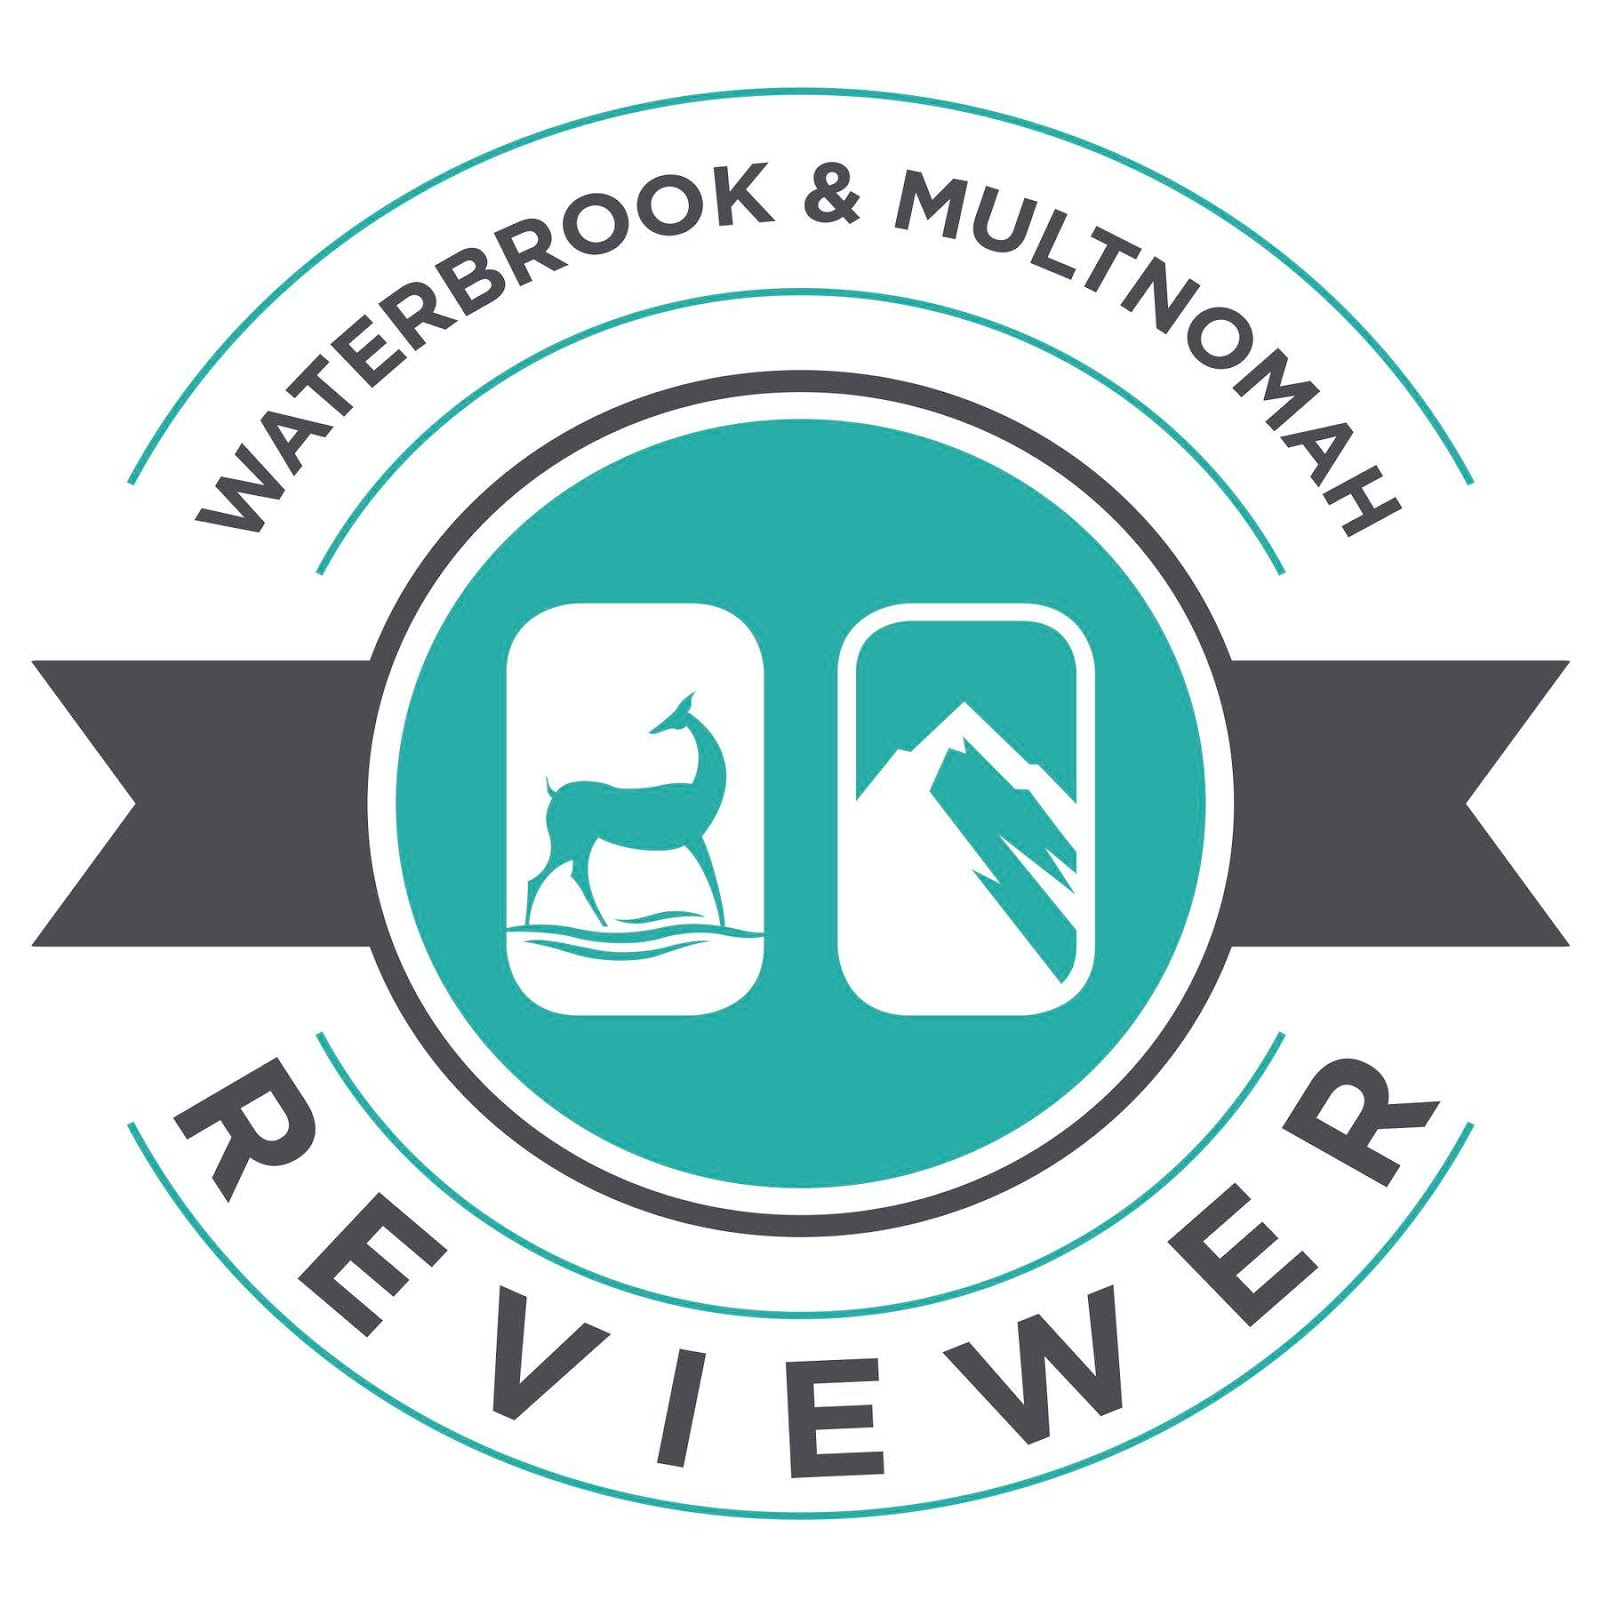 Waterbrook & Multnomah Launch Team